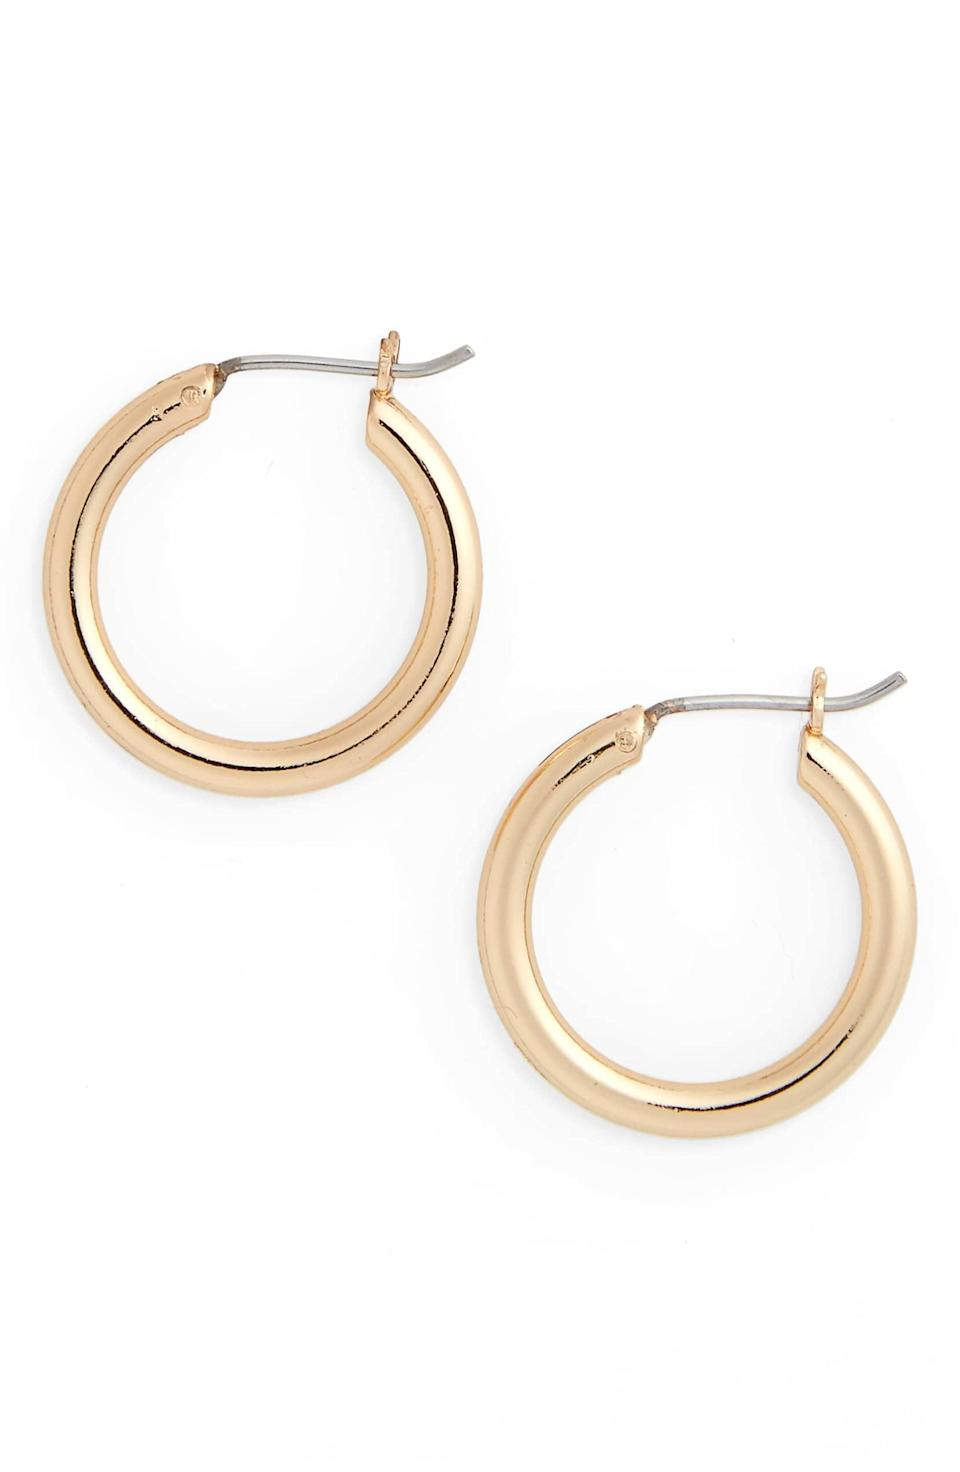 """<p>These <a href=""""https://www.popsugar.com/buy/Small-Endless-Hoop-Earrings-392705?p_name=Small%20Endless%20Hoop%20Earrings&retailer=shop.nordstrom.com&pid=392705&price=19&evar1=fab%3Aus&evar9=45535502&evar98=https%3A%2F%2Fwww.popsugar.com%2Ffashion%2Fphoto-gallery%2F45535502%2Fimage%2F45536096%2FSmall-Endless-Hoop-Earrings&list1=shopping%2Cgifts%2Choliday%2Cchristmas%2Cgift%20guide%2Cgifts%20under%20%2425%2Cfashion%20gifts%2Cgifts%20for%20women%2Cgifts%20under%20%2450%2Cgifts%20under%20%2475%2Caffordable%20shopping&prop13=mobile&pdata=1"""" class=""""link rapid-noclick-resp"""" rel=""""nofollow noopener"""" target=""""_blank"""" data-ylk=""""slk:Small Endless Hoop Earrings"""">Small Endless Hoop Earrings</a> ($19) go with everything.</p>"""